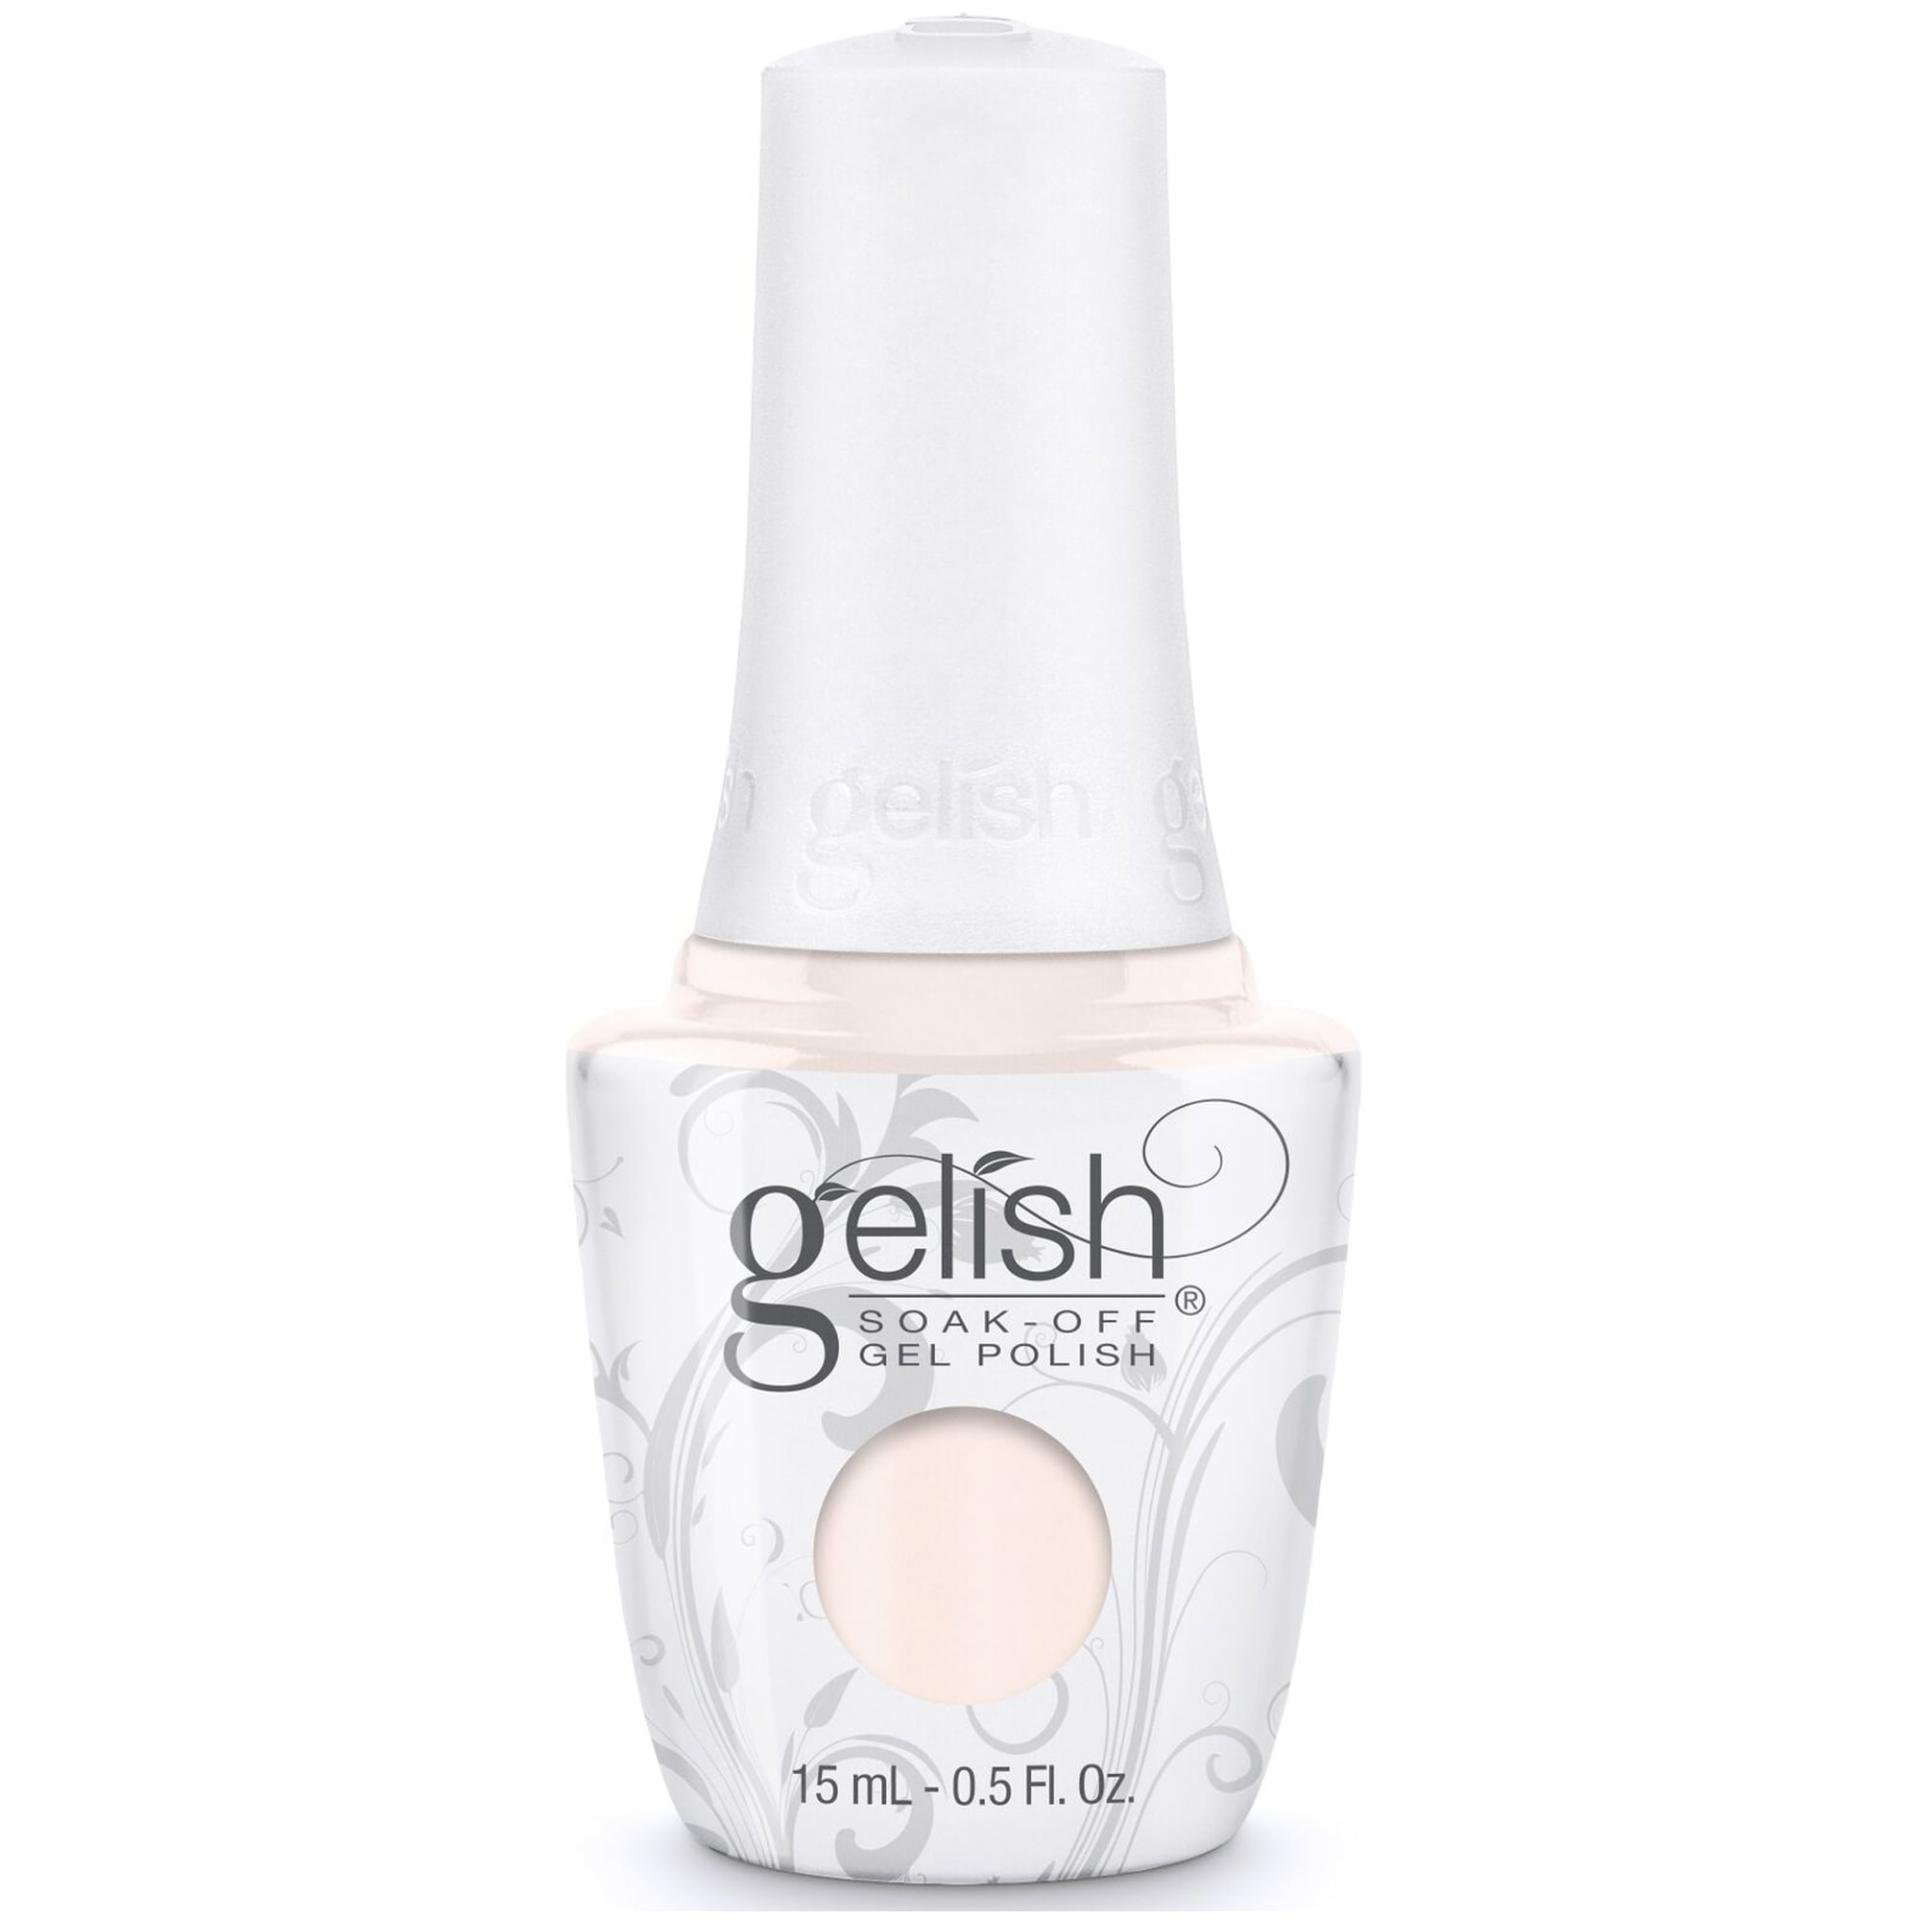 Gelish my main freeze 2